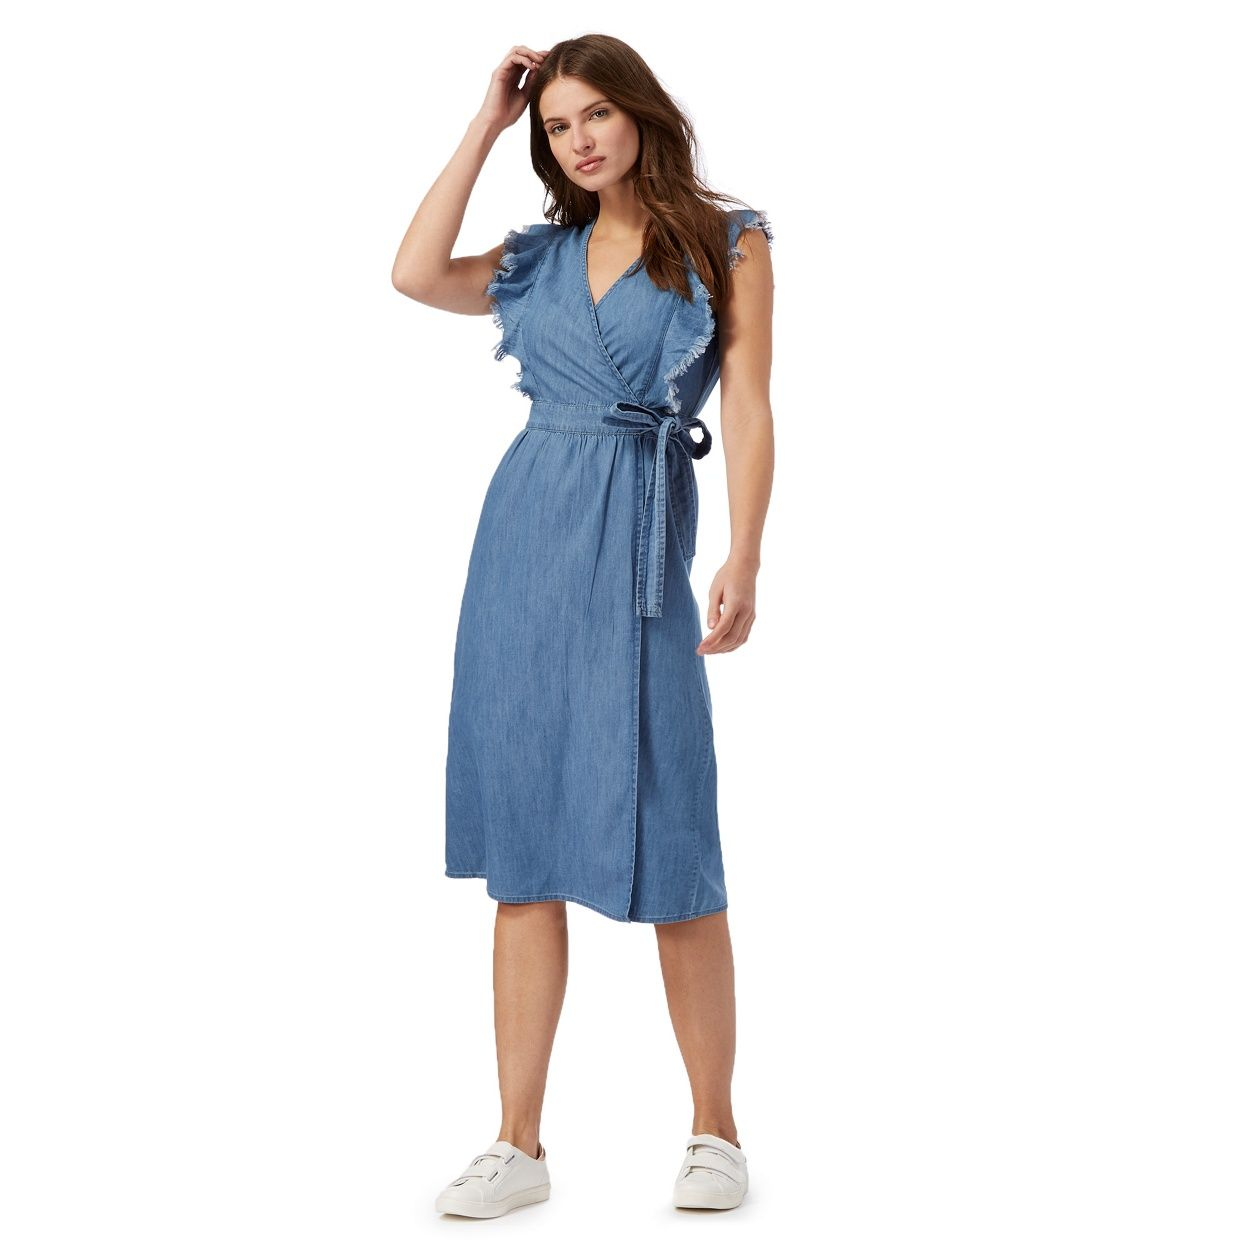 0c3b48060d3 This dress from Red Herring will make a chic update to any weekend capsule.  Designed in Nineties-inspired denim